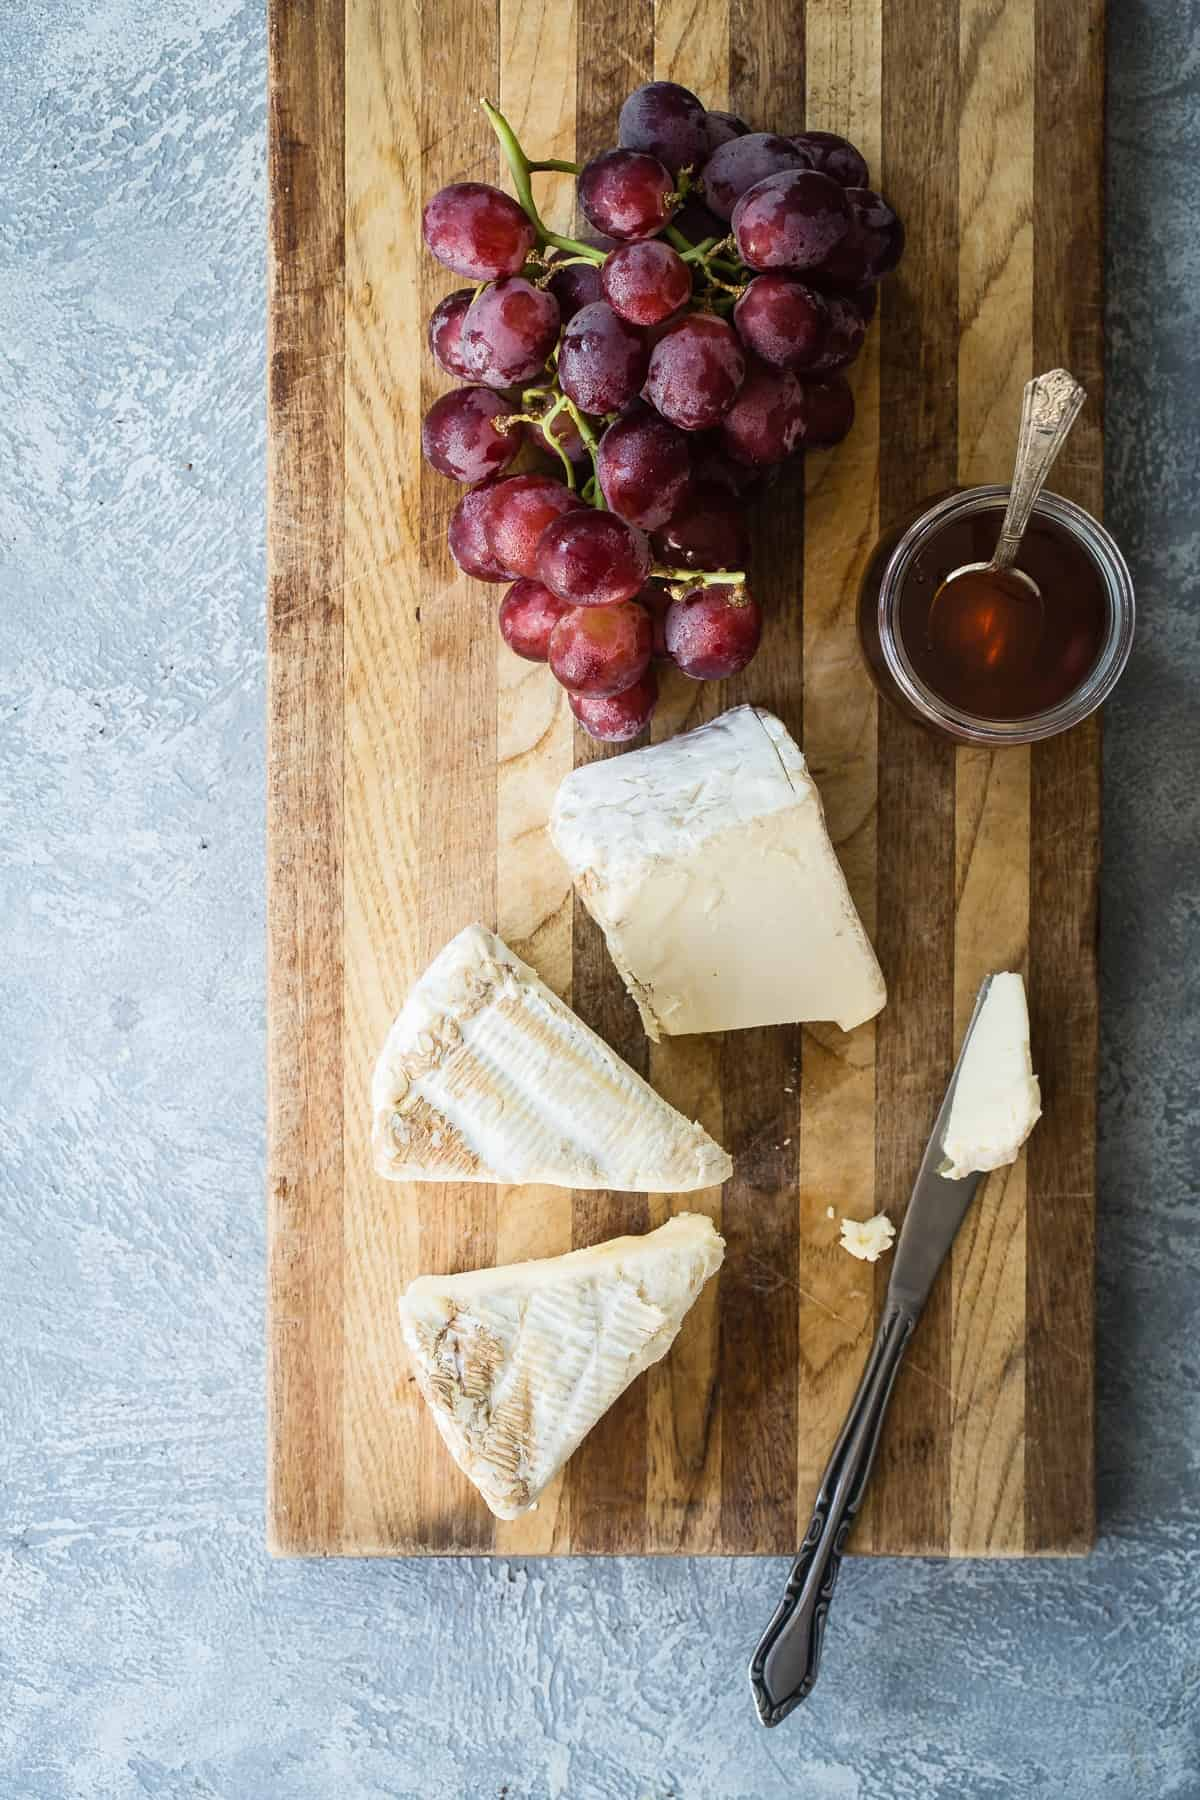 Brie cheese with grapes on a cheese board